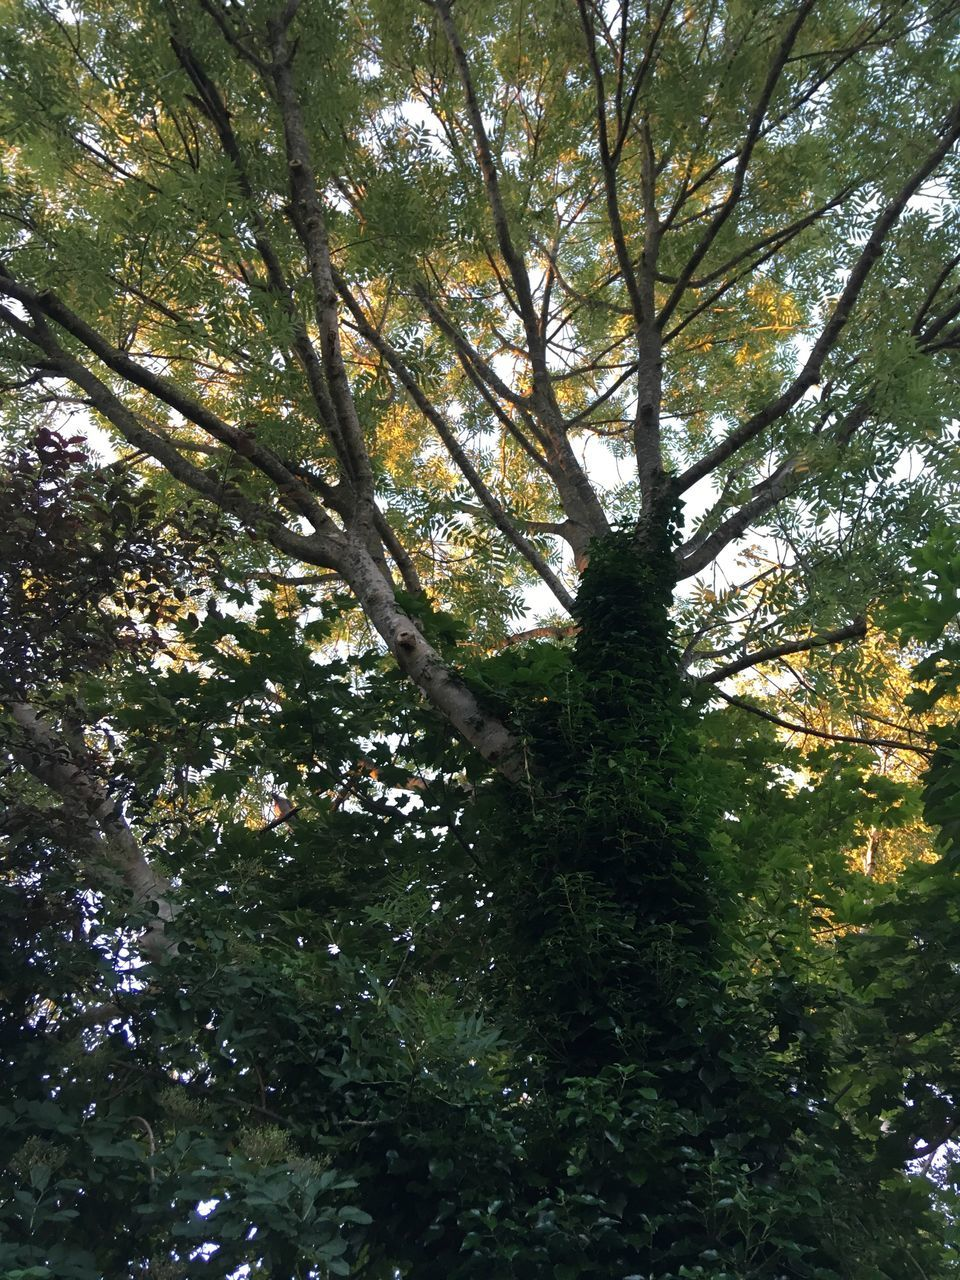 tree, low angle view, growth, nature, beauty in nature, forest, day, green color, branch, no people, tranquility, outdoors, scenics, tree trunk, sky